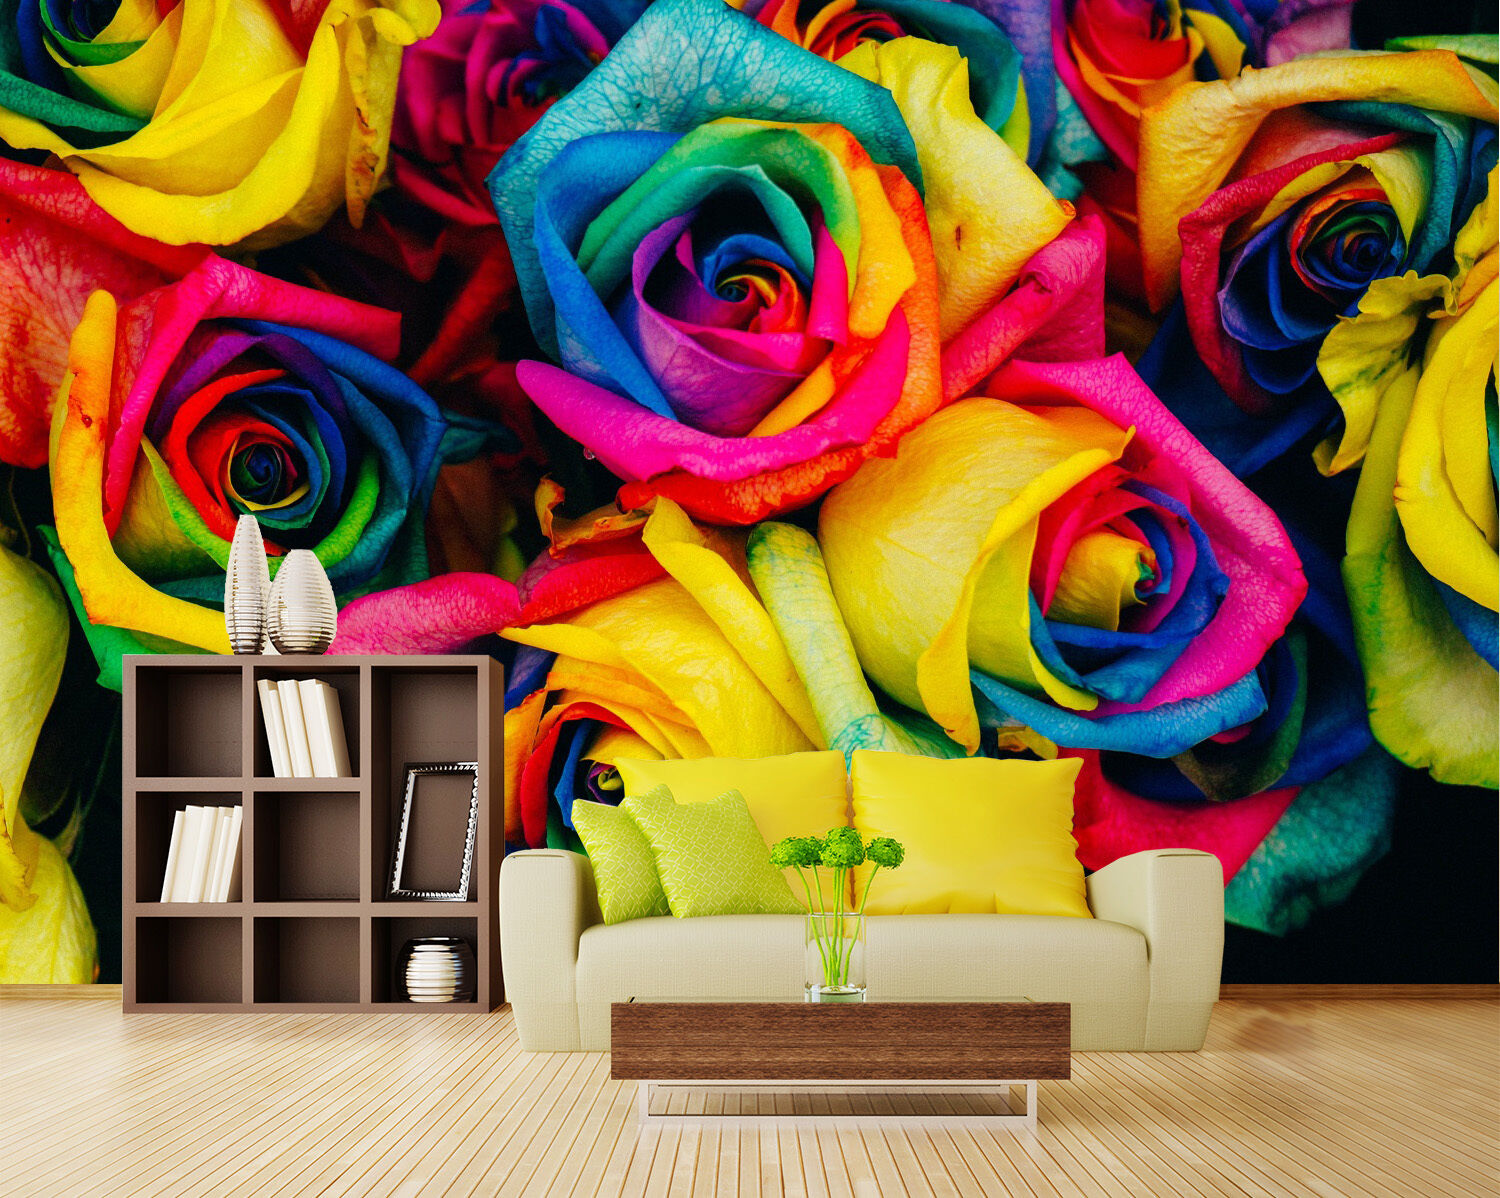 3D Farbeed rose painting Wall Paper Print Decal Wall Deco Indoor wall Mural